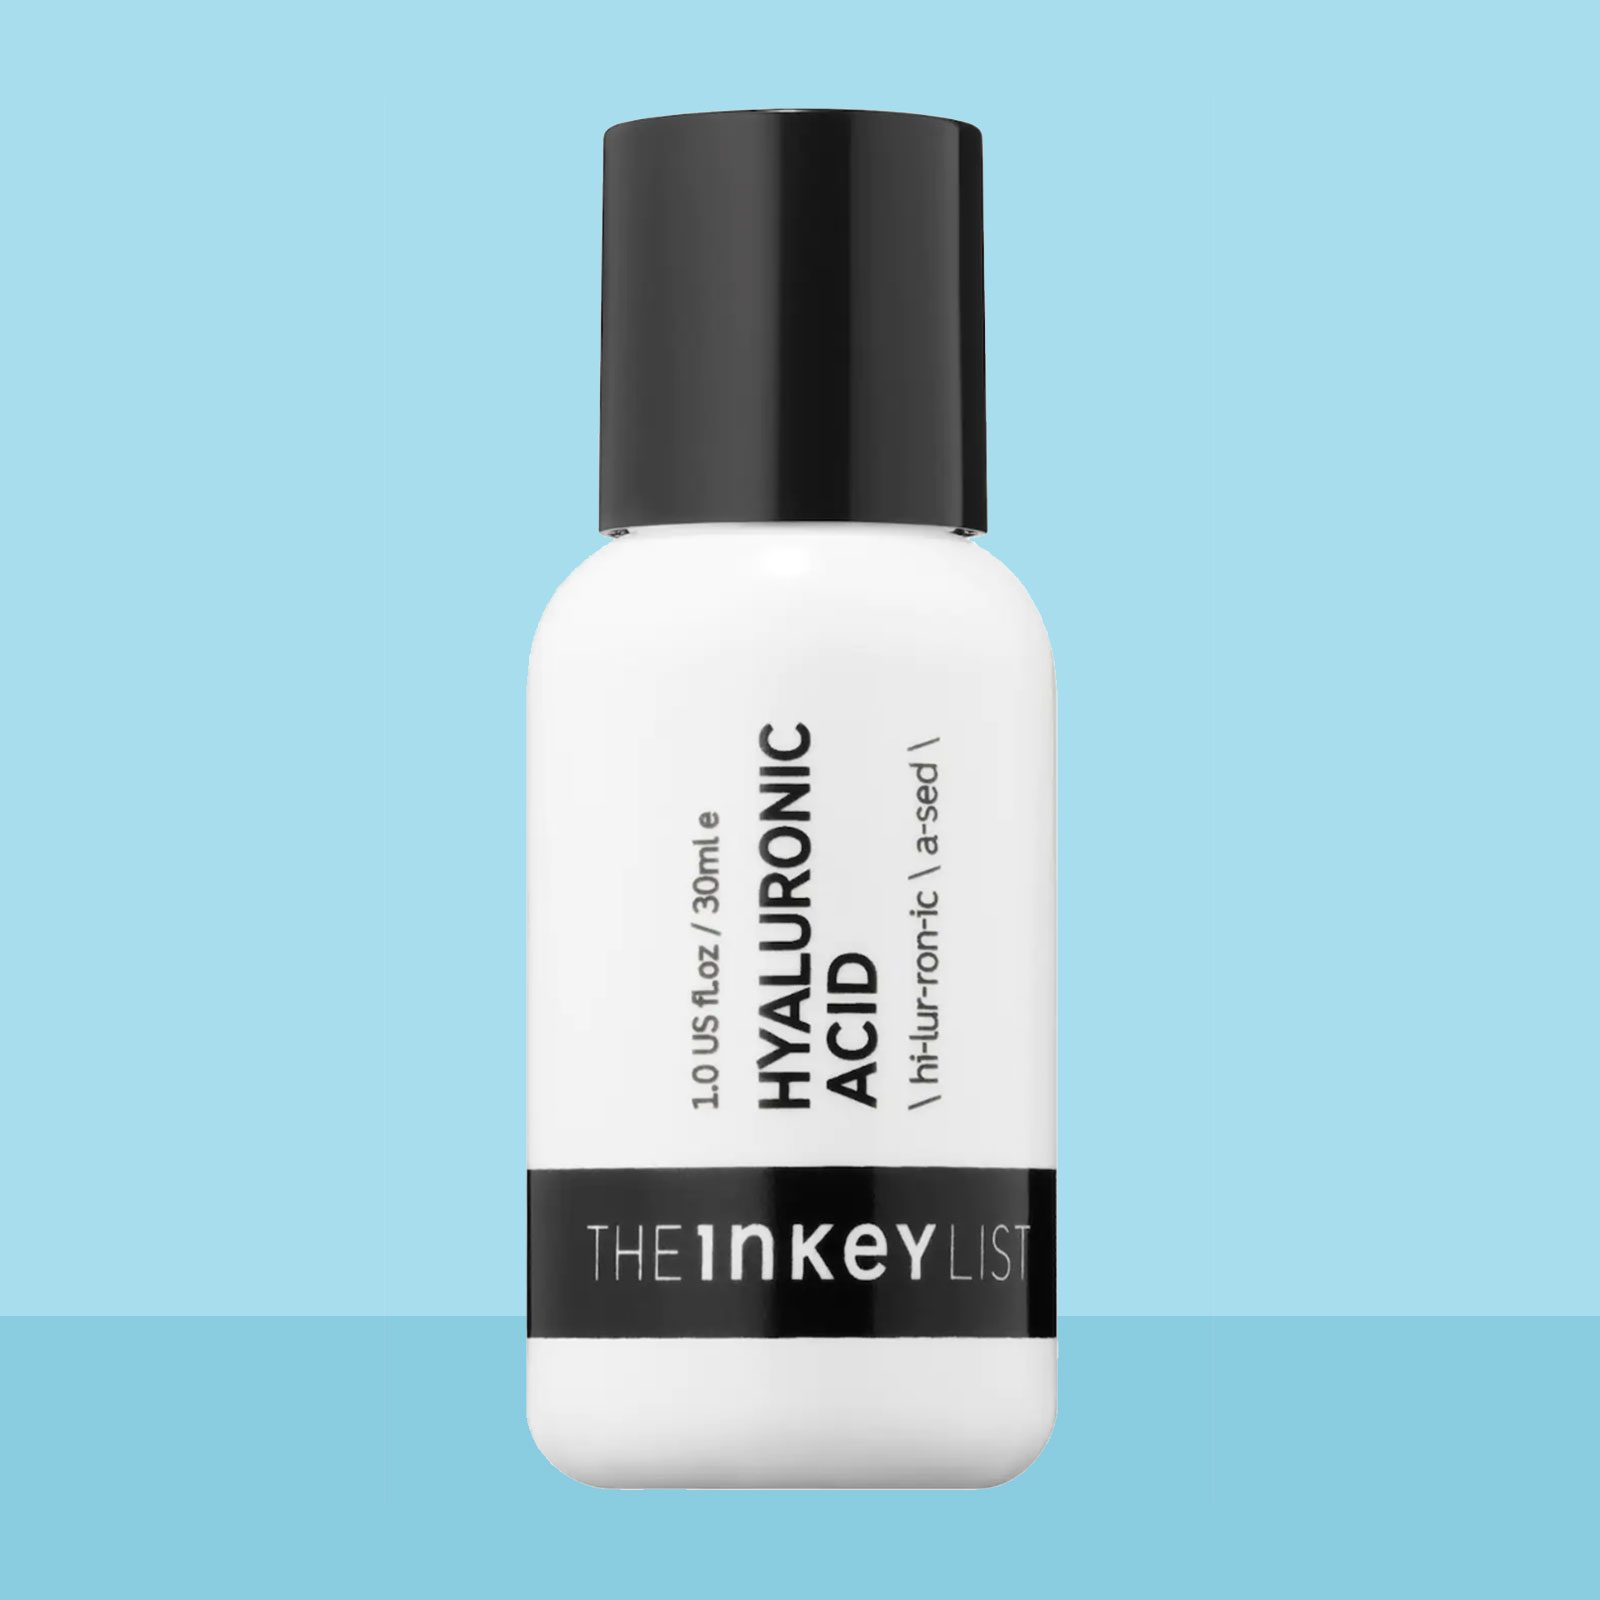 Best face serum with hyaluronic acid: The Inkey List Hyaluronic Acid Hydrating Serum